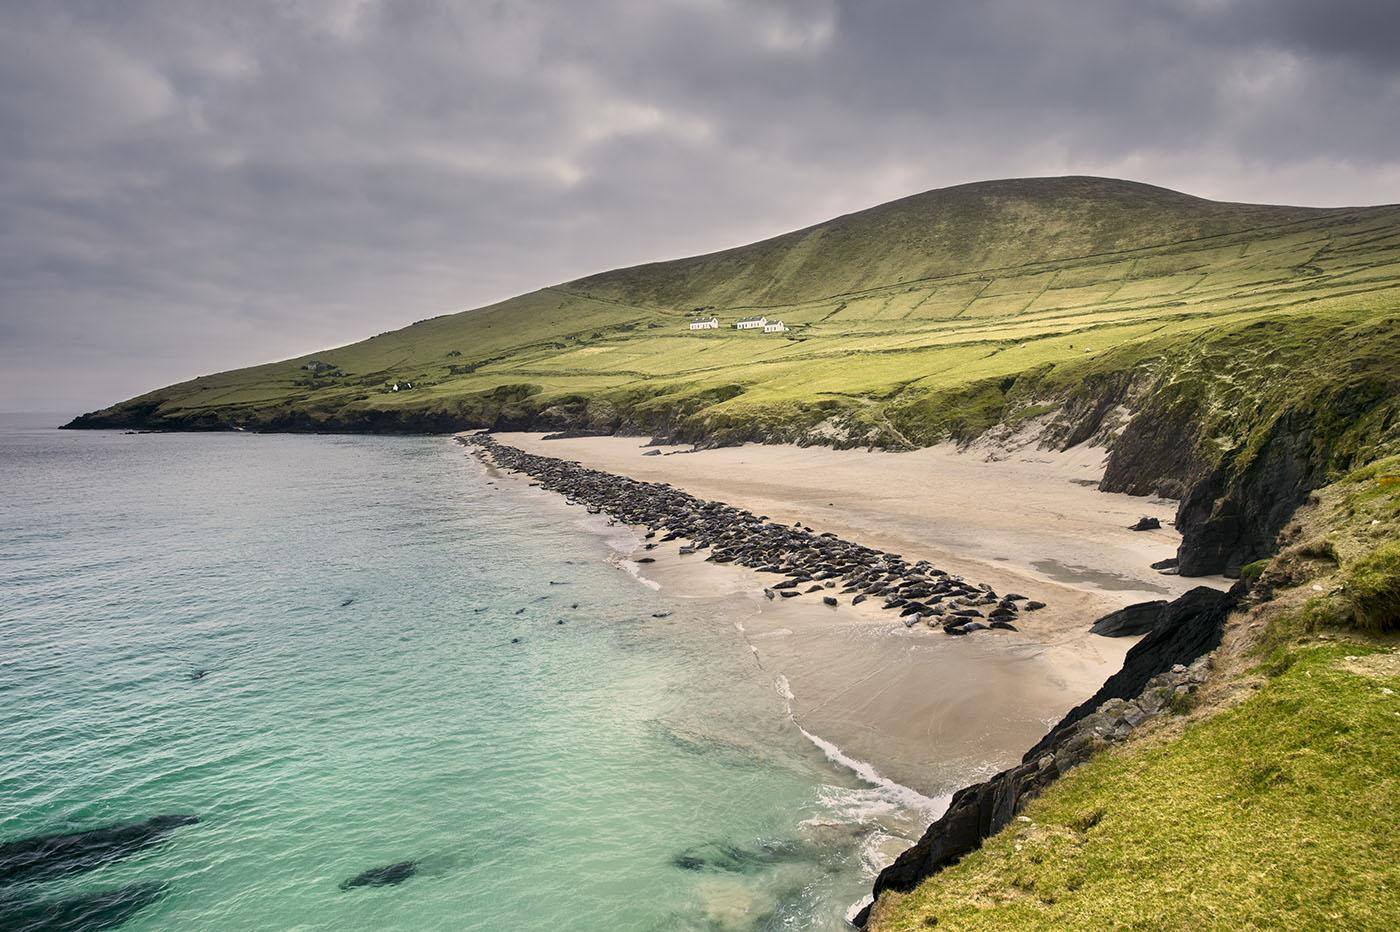 A basking colony of grey seals on one of the Blasket Islands. Photo: George Karbus